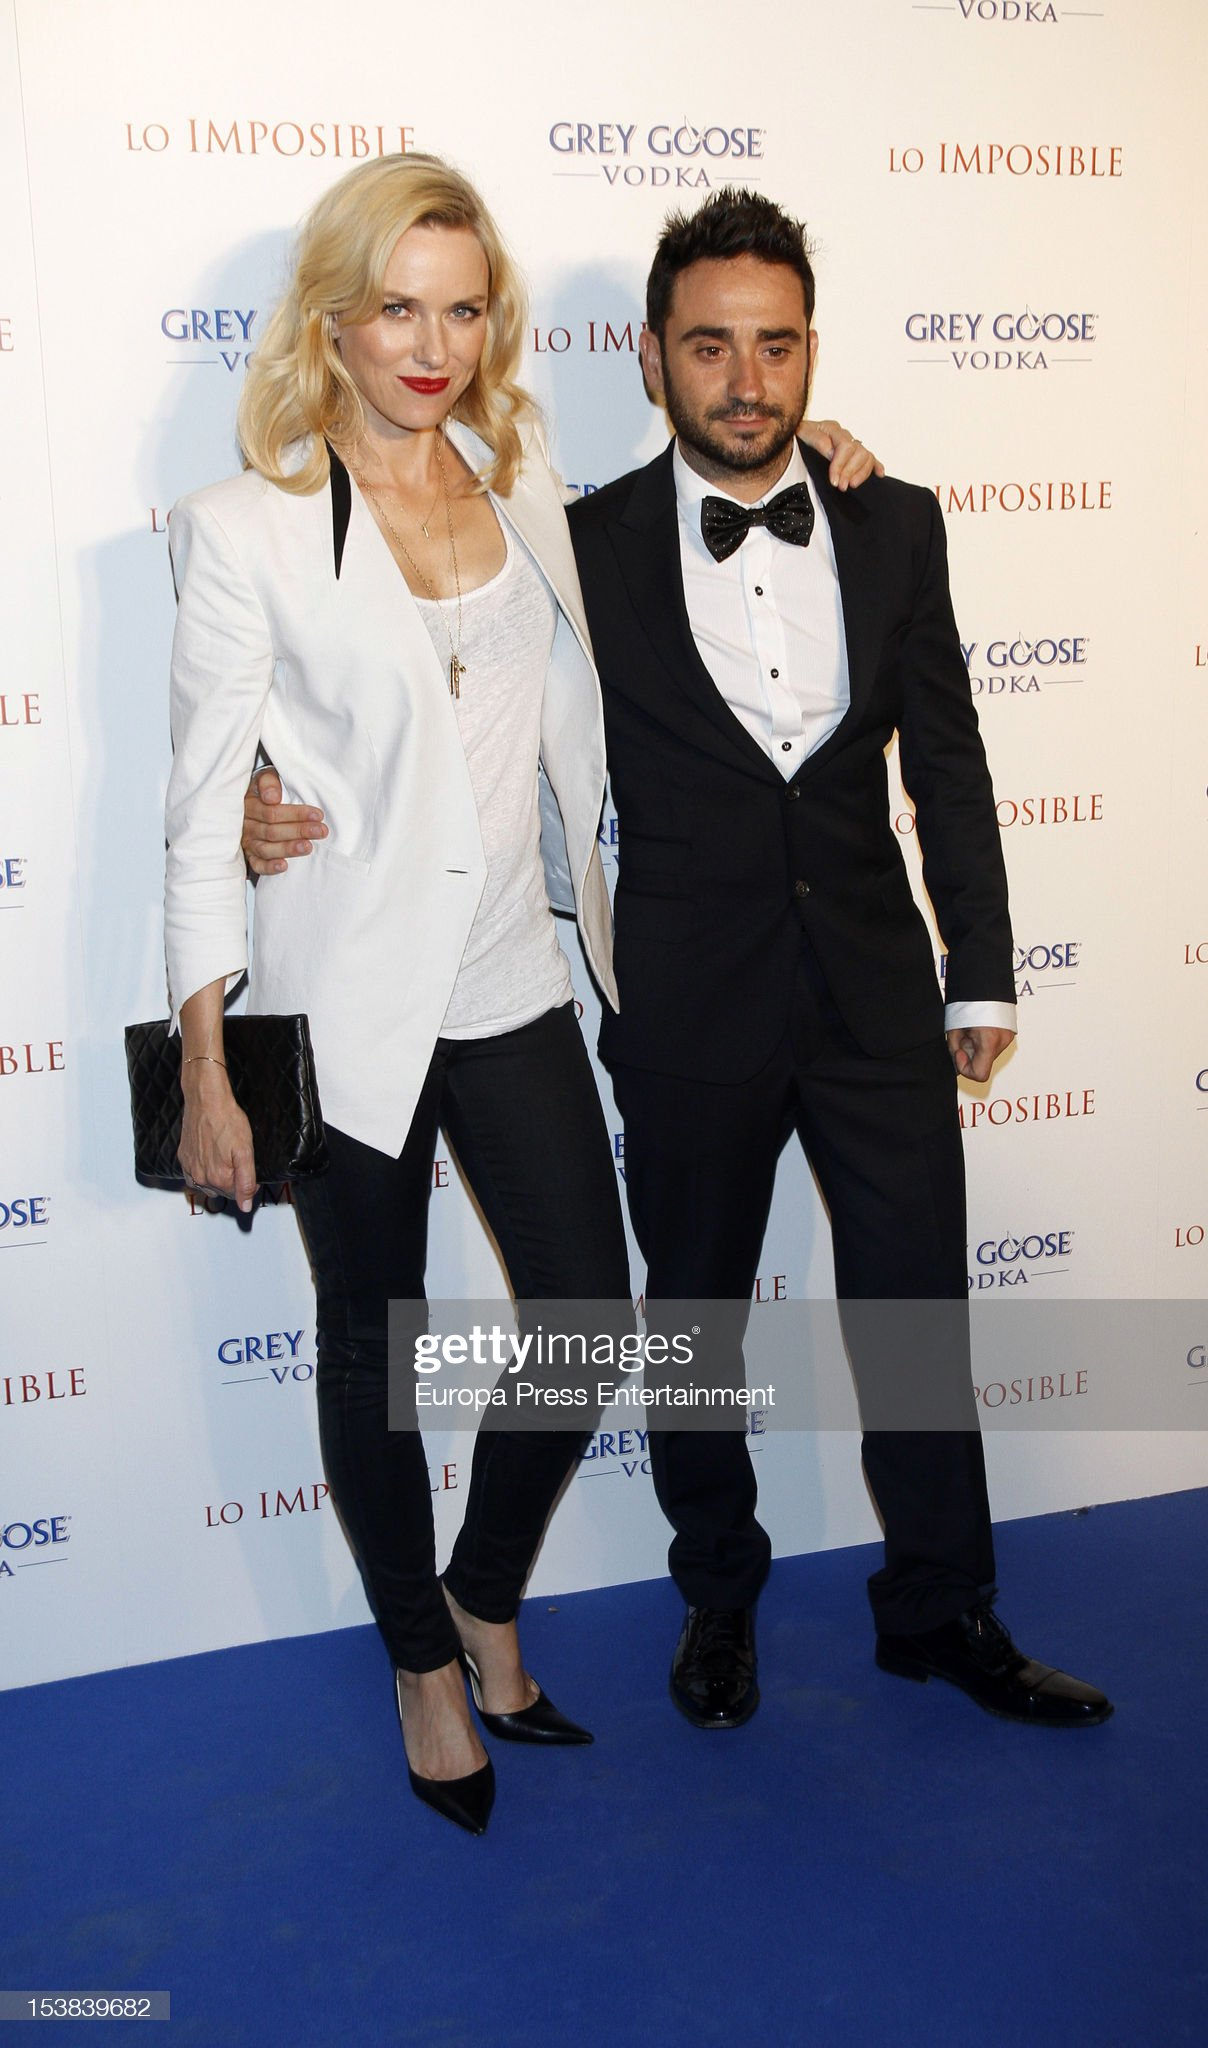 ¿Cuánto mide Naomi Watts? - Altura - Real height Director-juan-antonio-bayona-and-actress-naomi-watts-attend-the-picture-id153839682?s=2048x2048